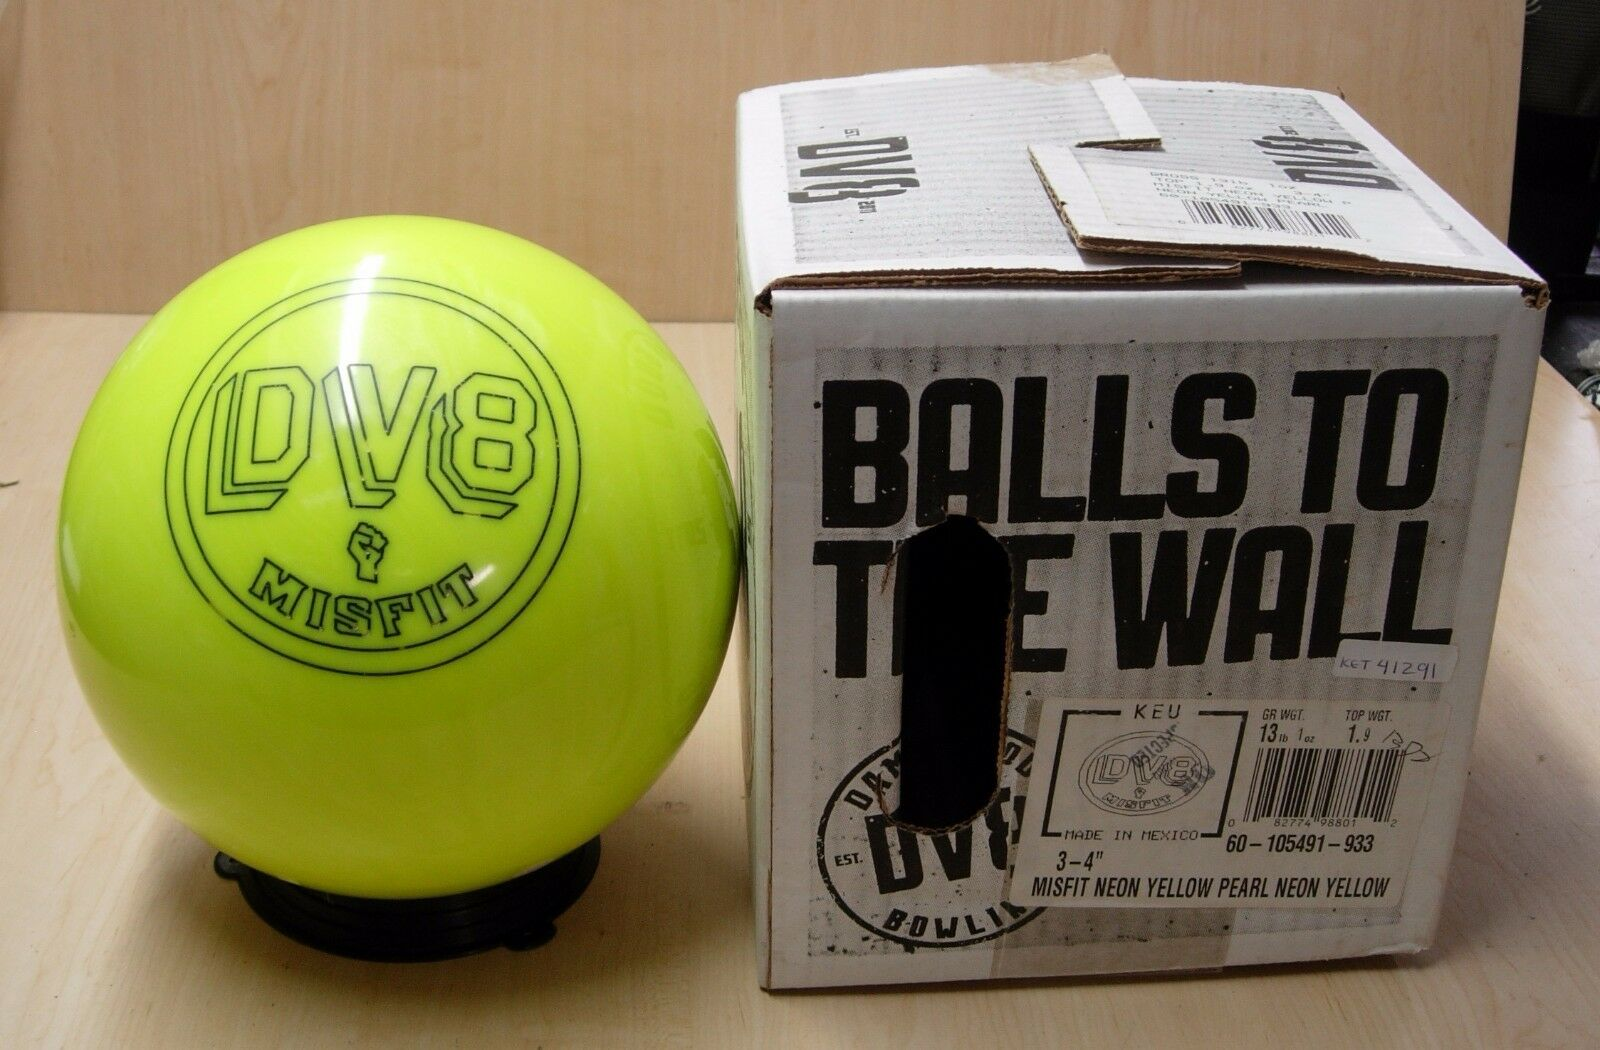 = 13 1 Oz Tw 1.9, Pin 3-4 Dv8 Misfit Neon Yellow Bowling Ball